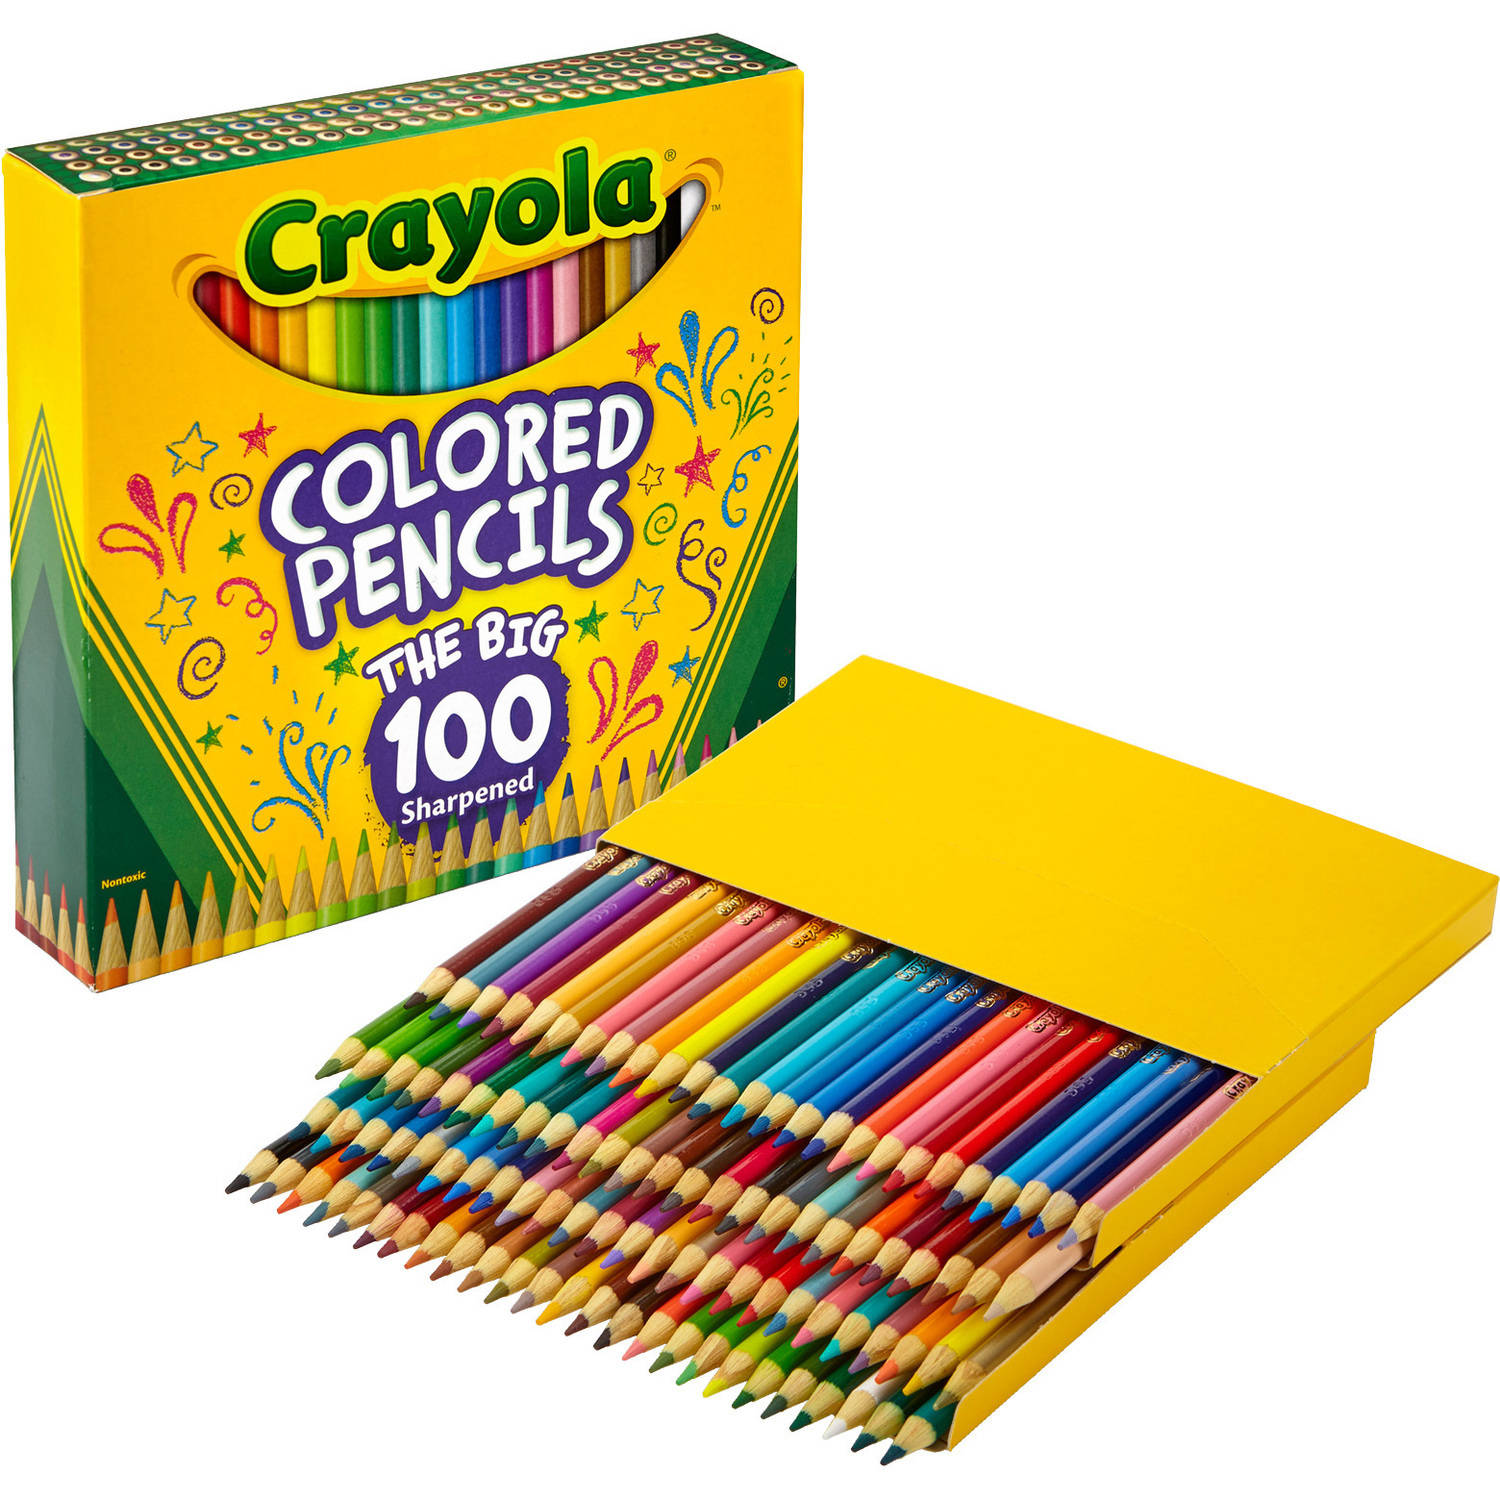 Crayola Adult Coloring Gift Set Includes 100 Count Colored Pencils and the Elegant Escapes Adult Coloring Book